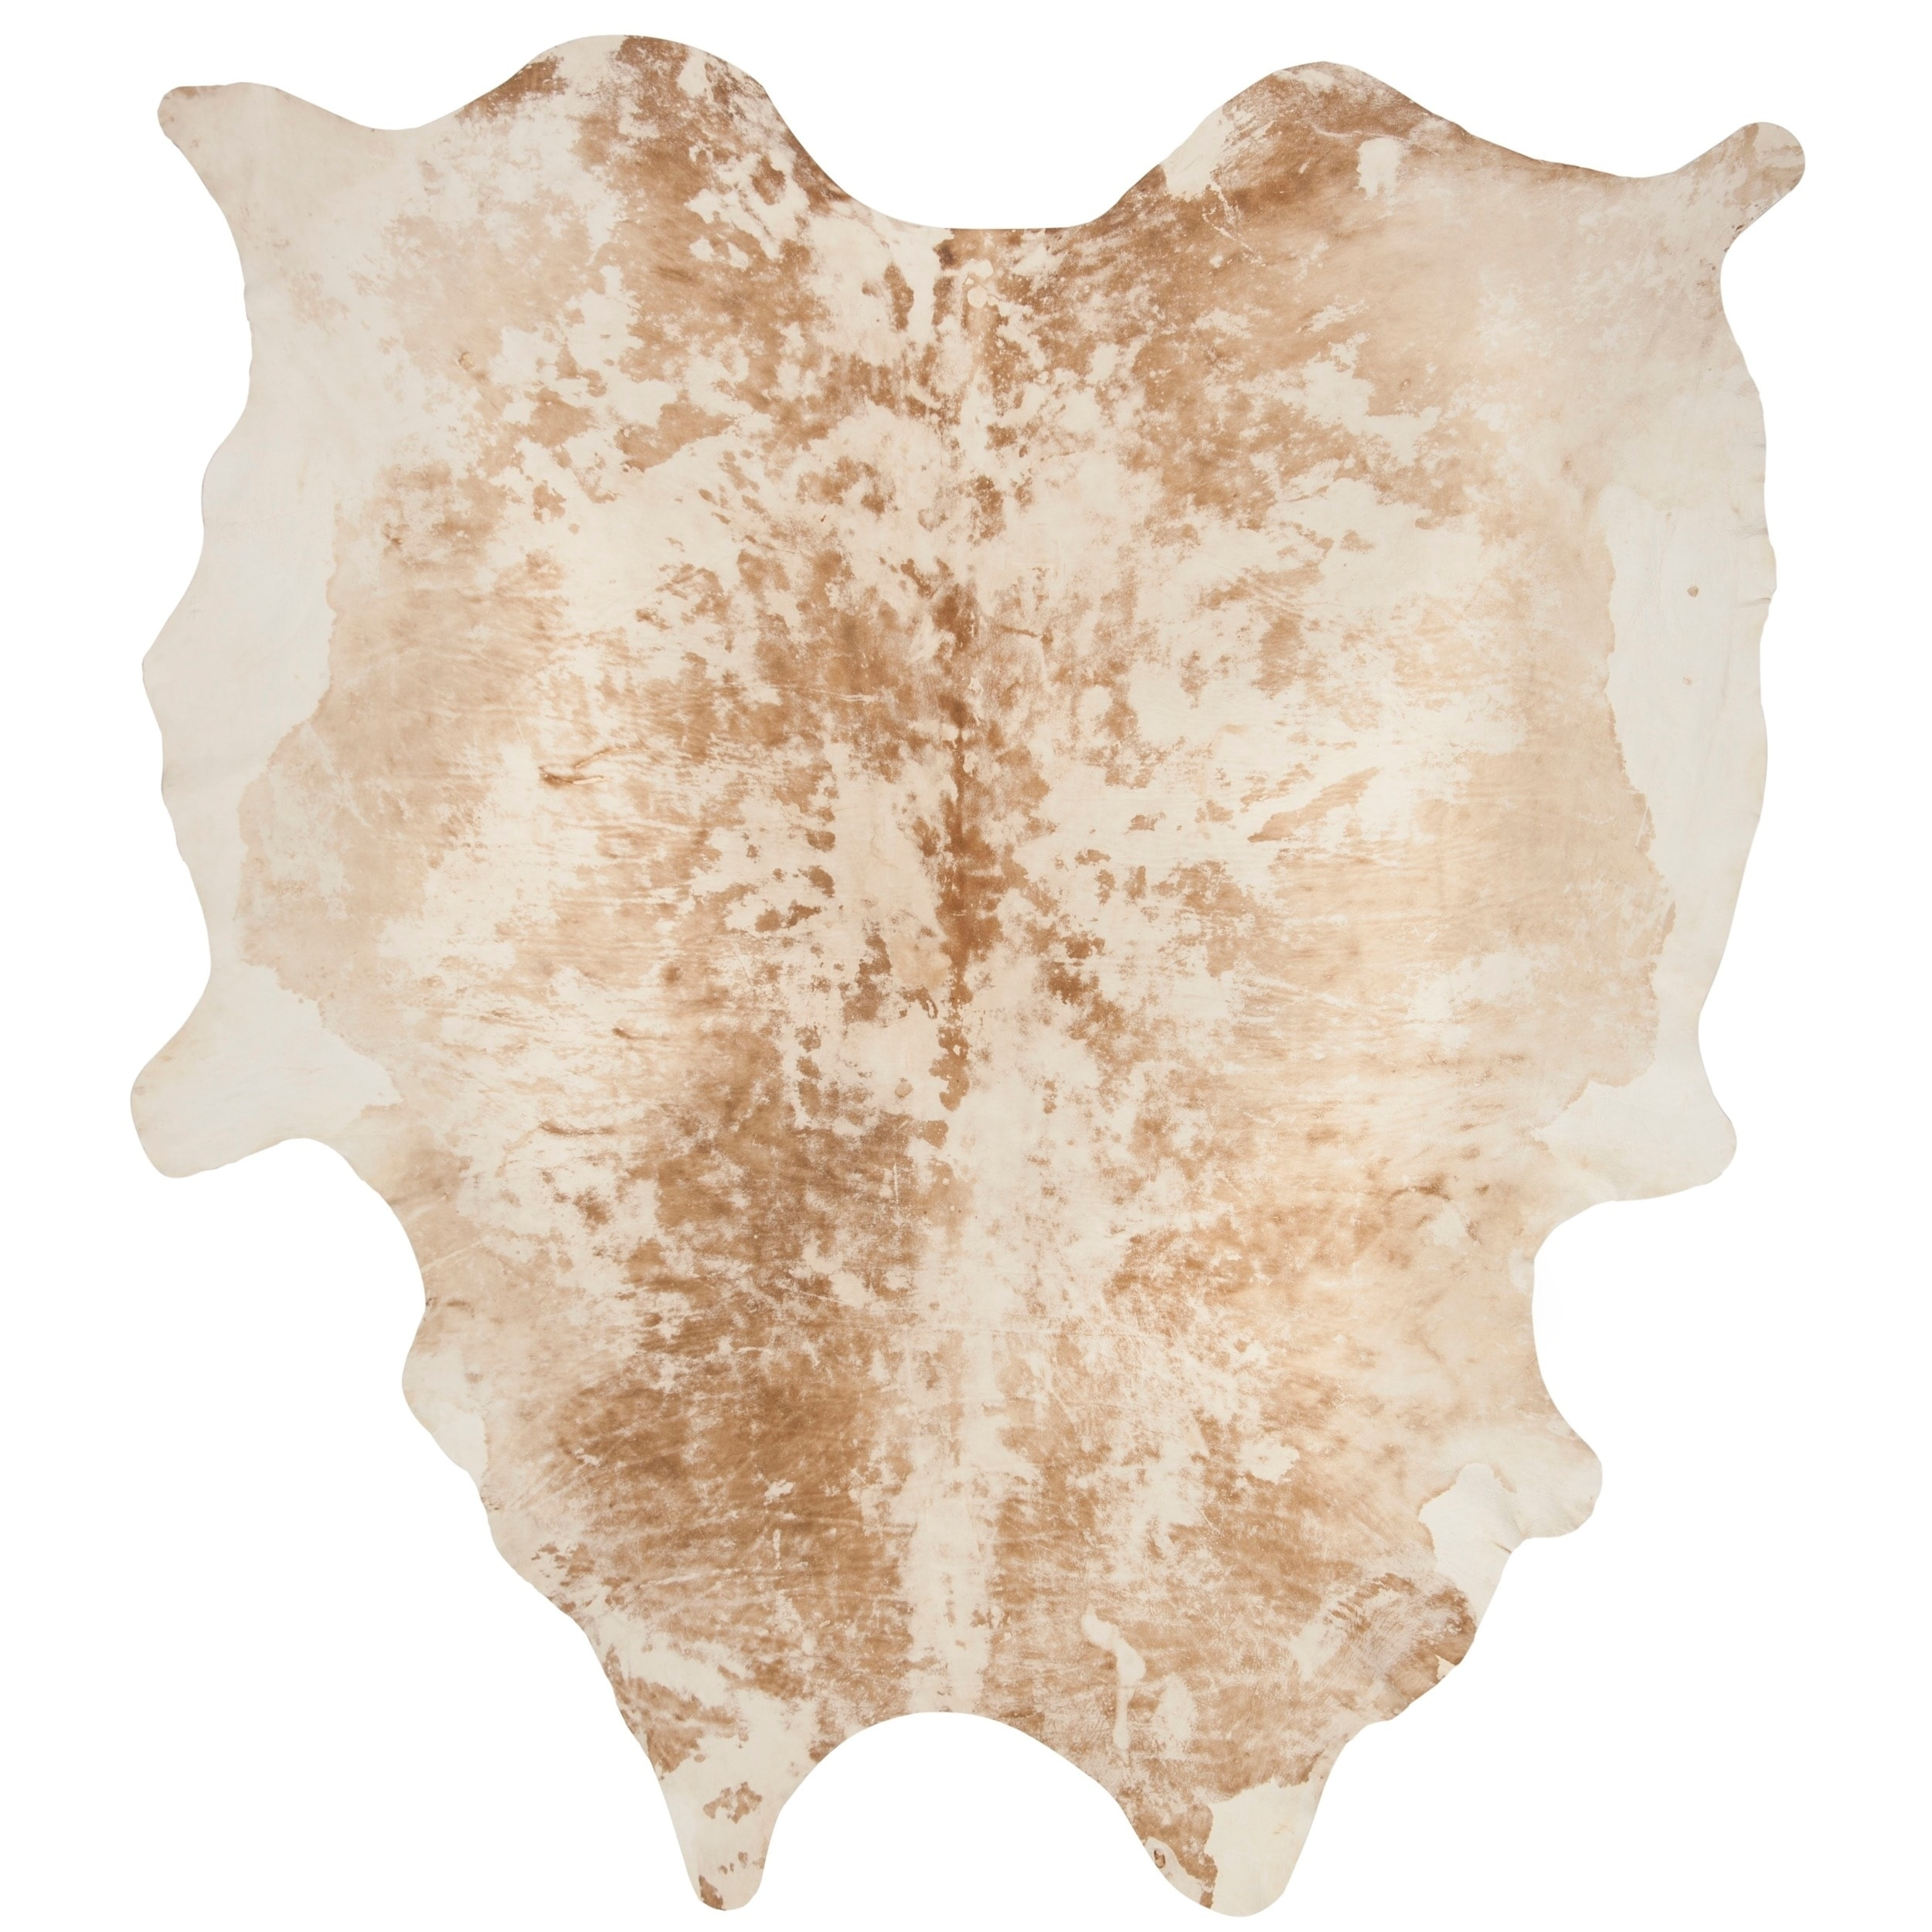 Safavieh Handpicked Hacienda Argentinian Cow Hide Casual Tan Cowhide Rug 6 X 9 On Free Shipping Today 22560264